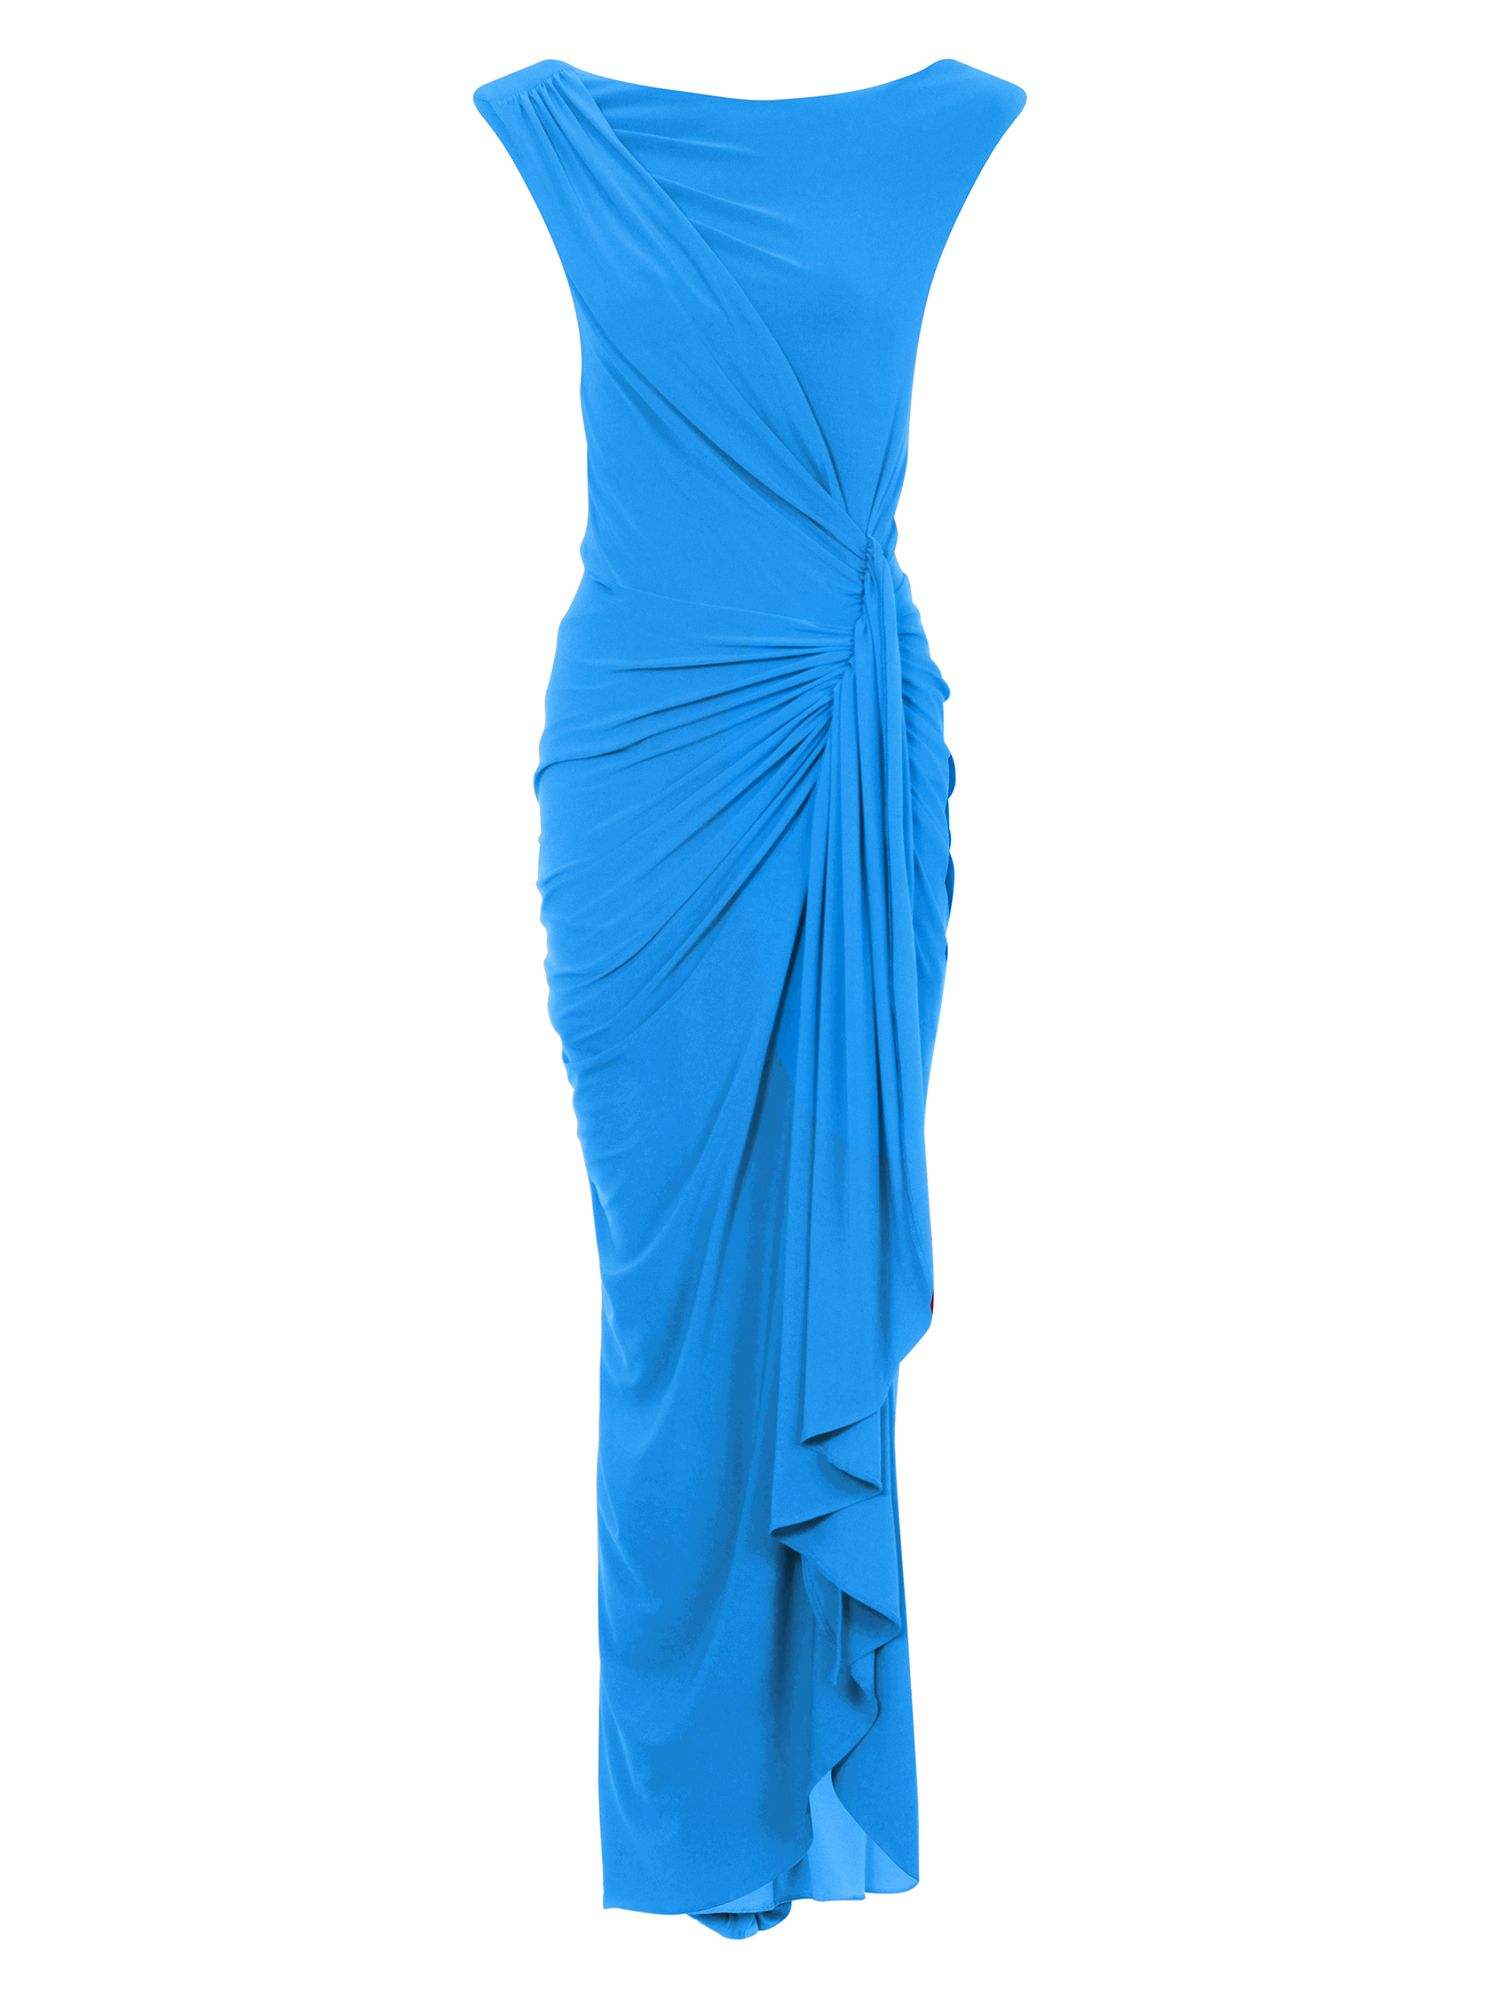 HotSquash Grecian Maxi Dress in Clever Fabric, Blue